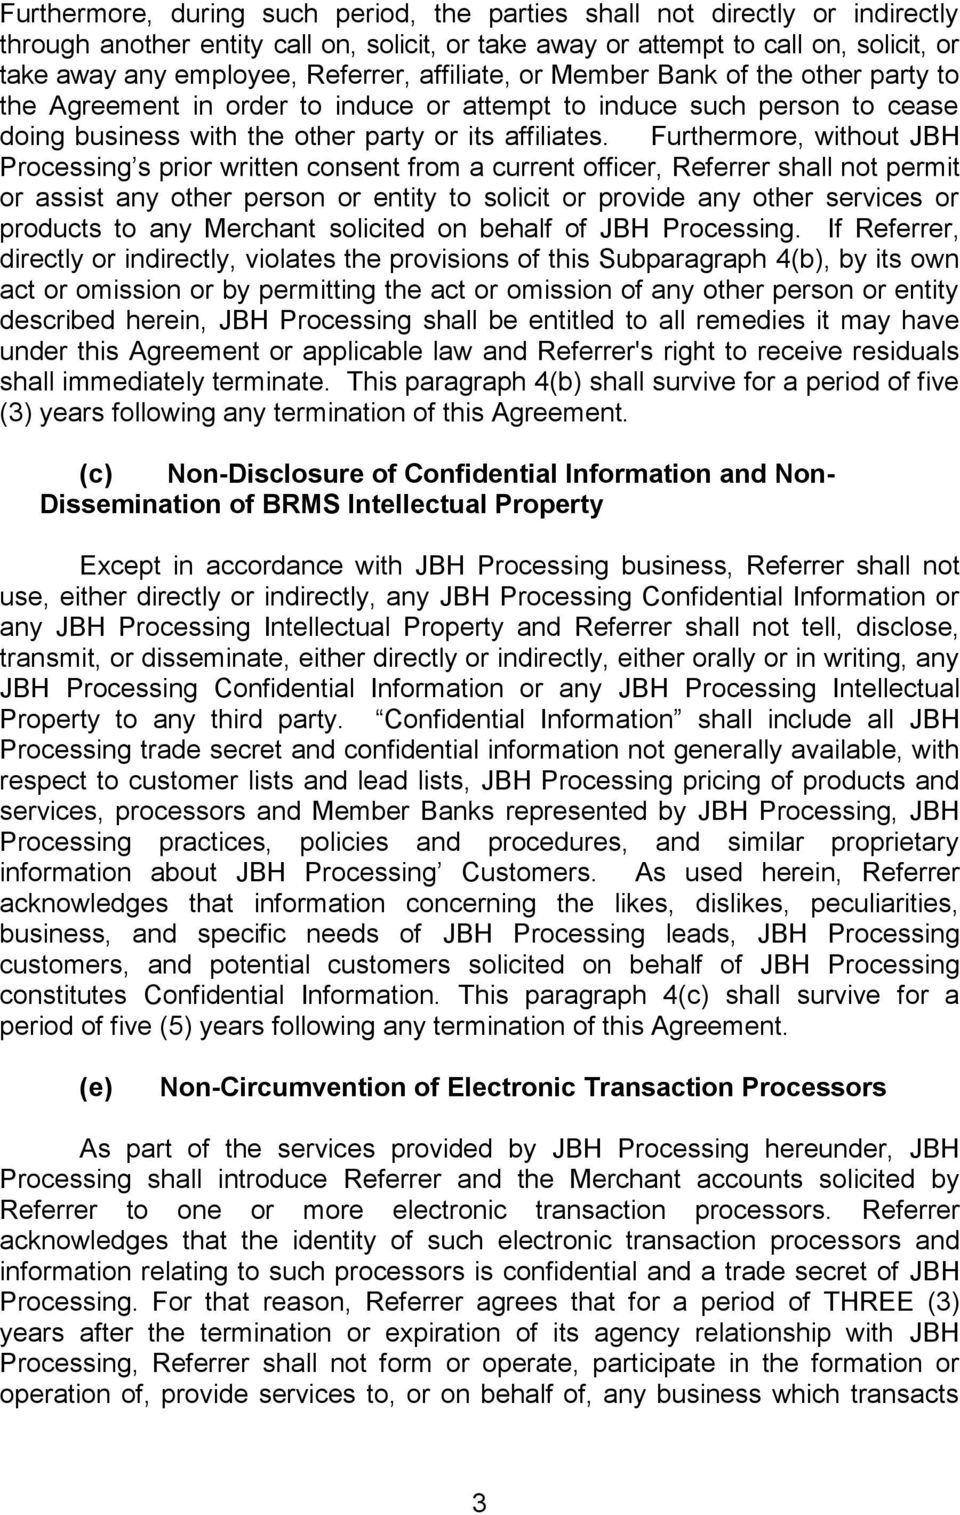 Furthermore, without JBH Processing s prior written consent from a current officer, Referrer shall not permit or assist any other person or entity to solicit or provide any other services or products